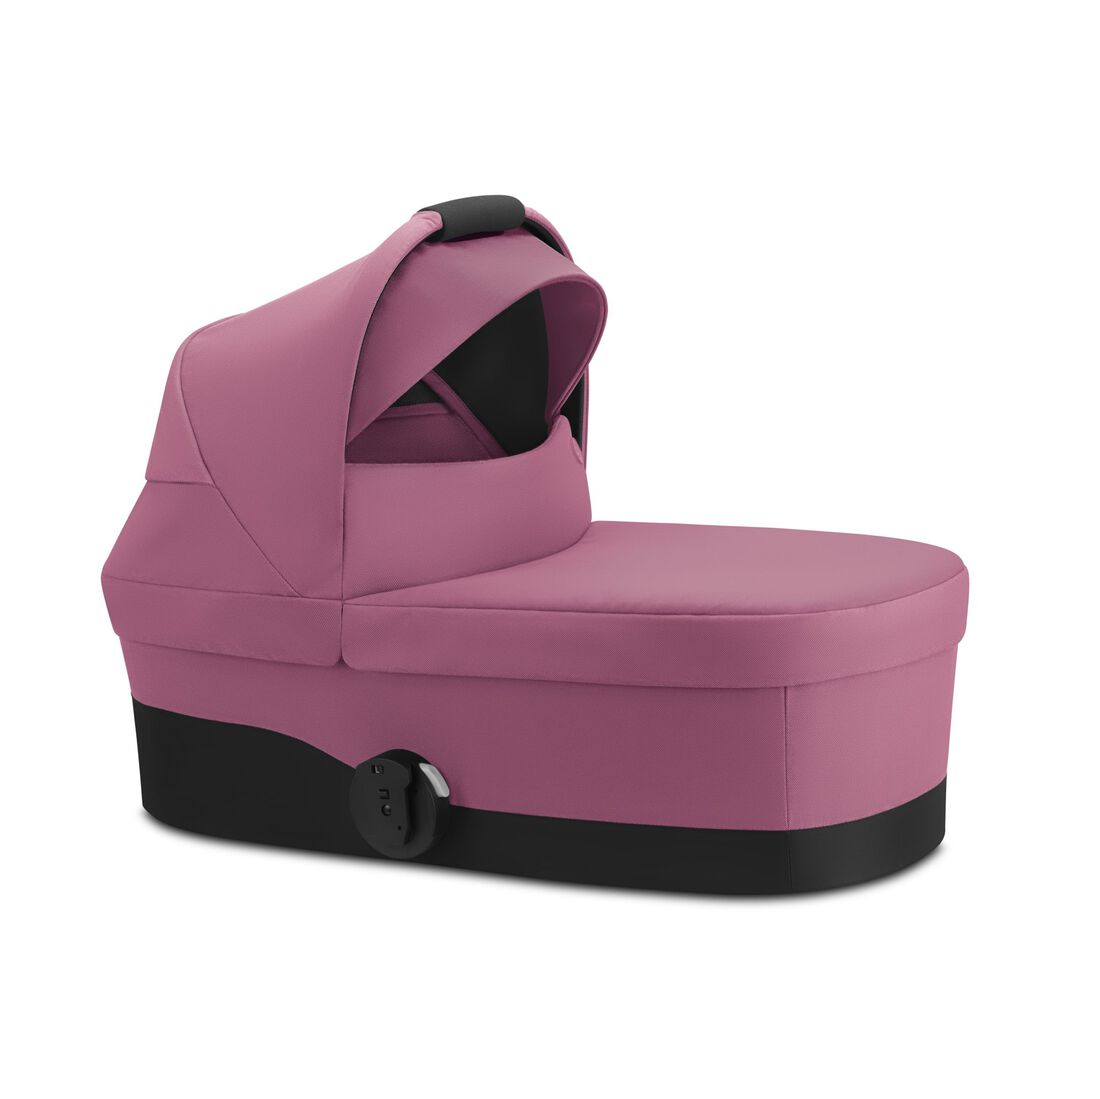 CYBEX Cot S - Magnolia Pink in Magnolia Pink large image number 2